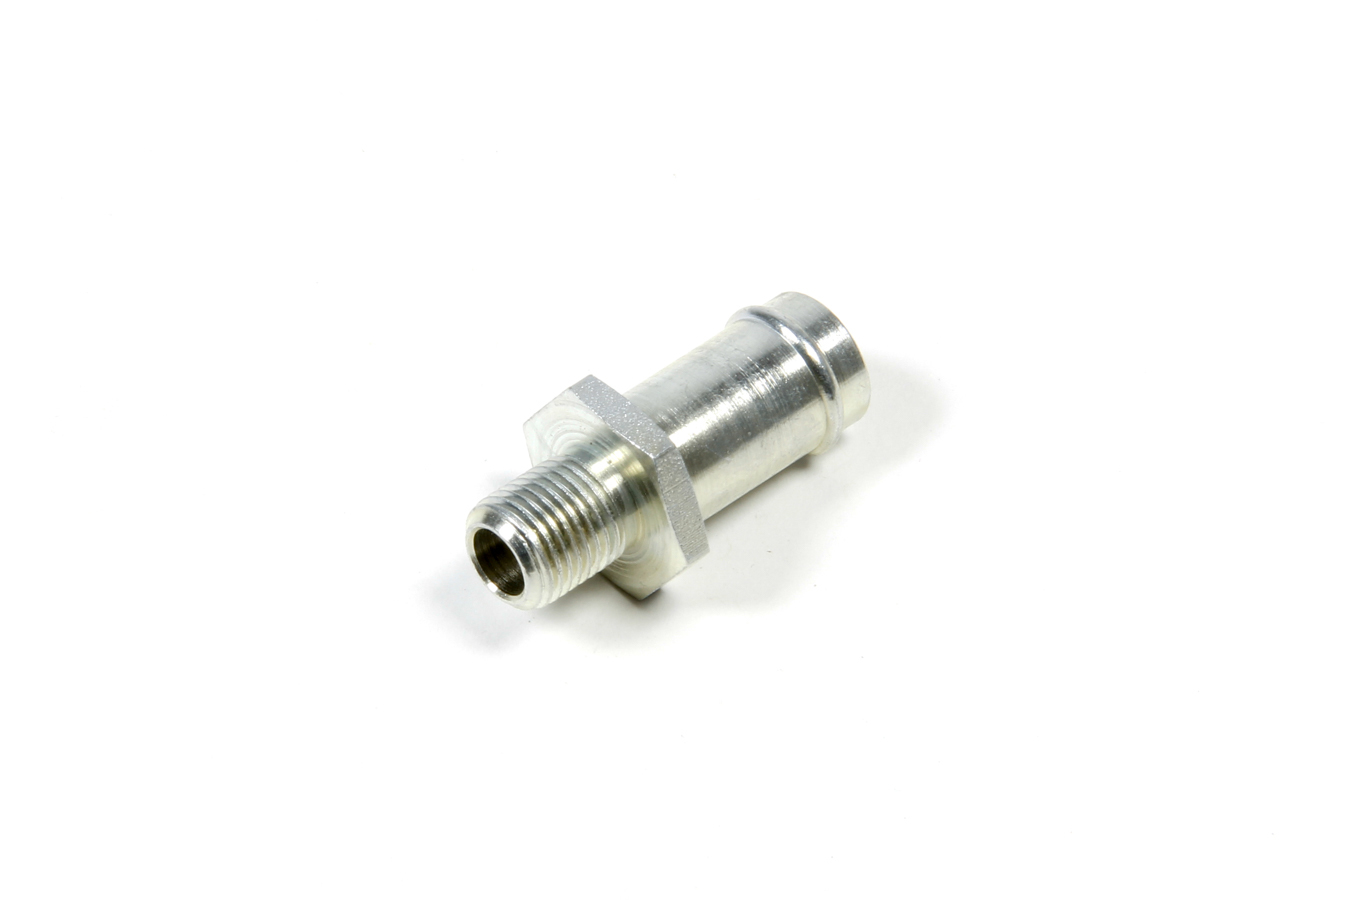 Inline Fuel Pump Fitting M10 x 1 to 12mm Barb